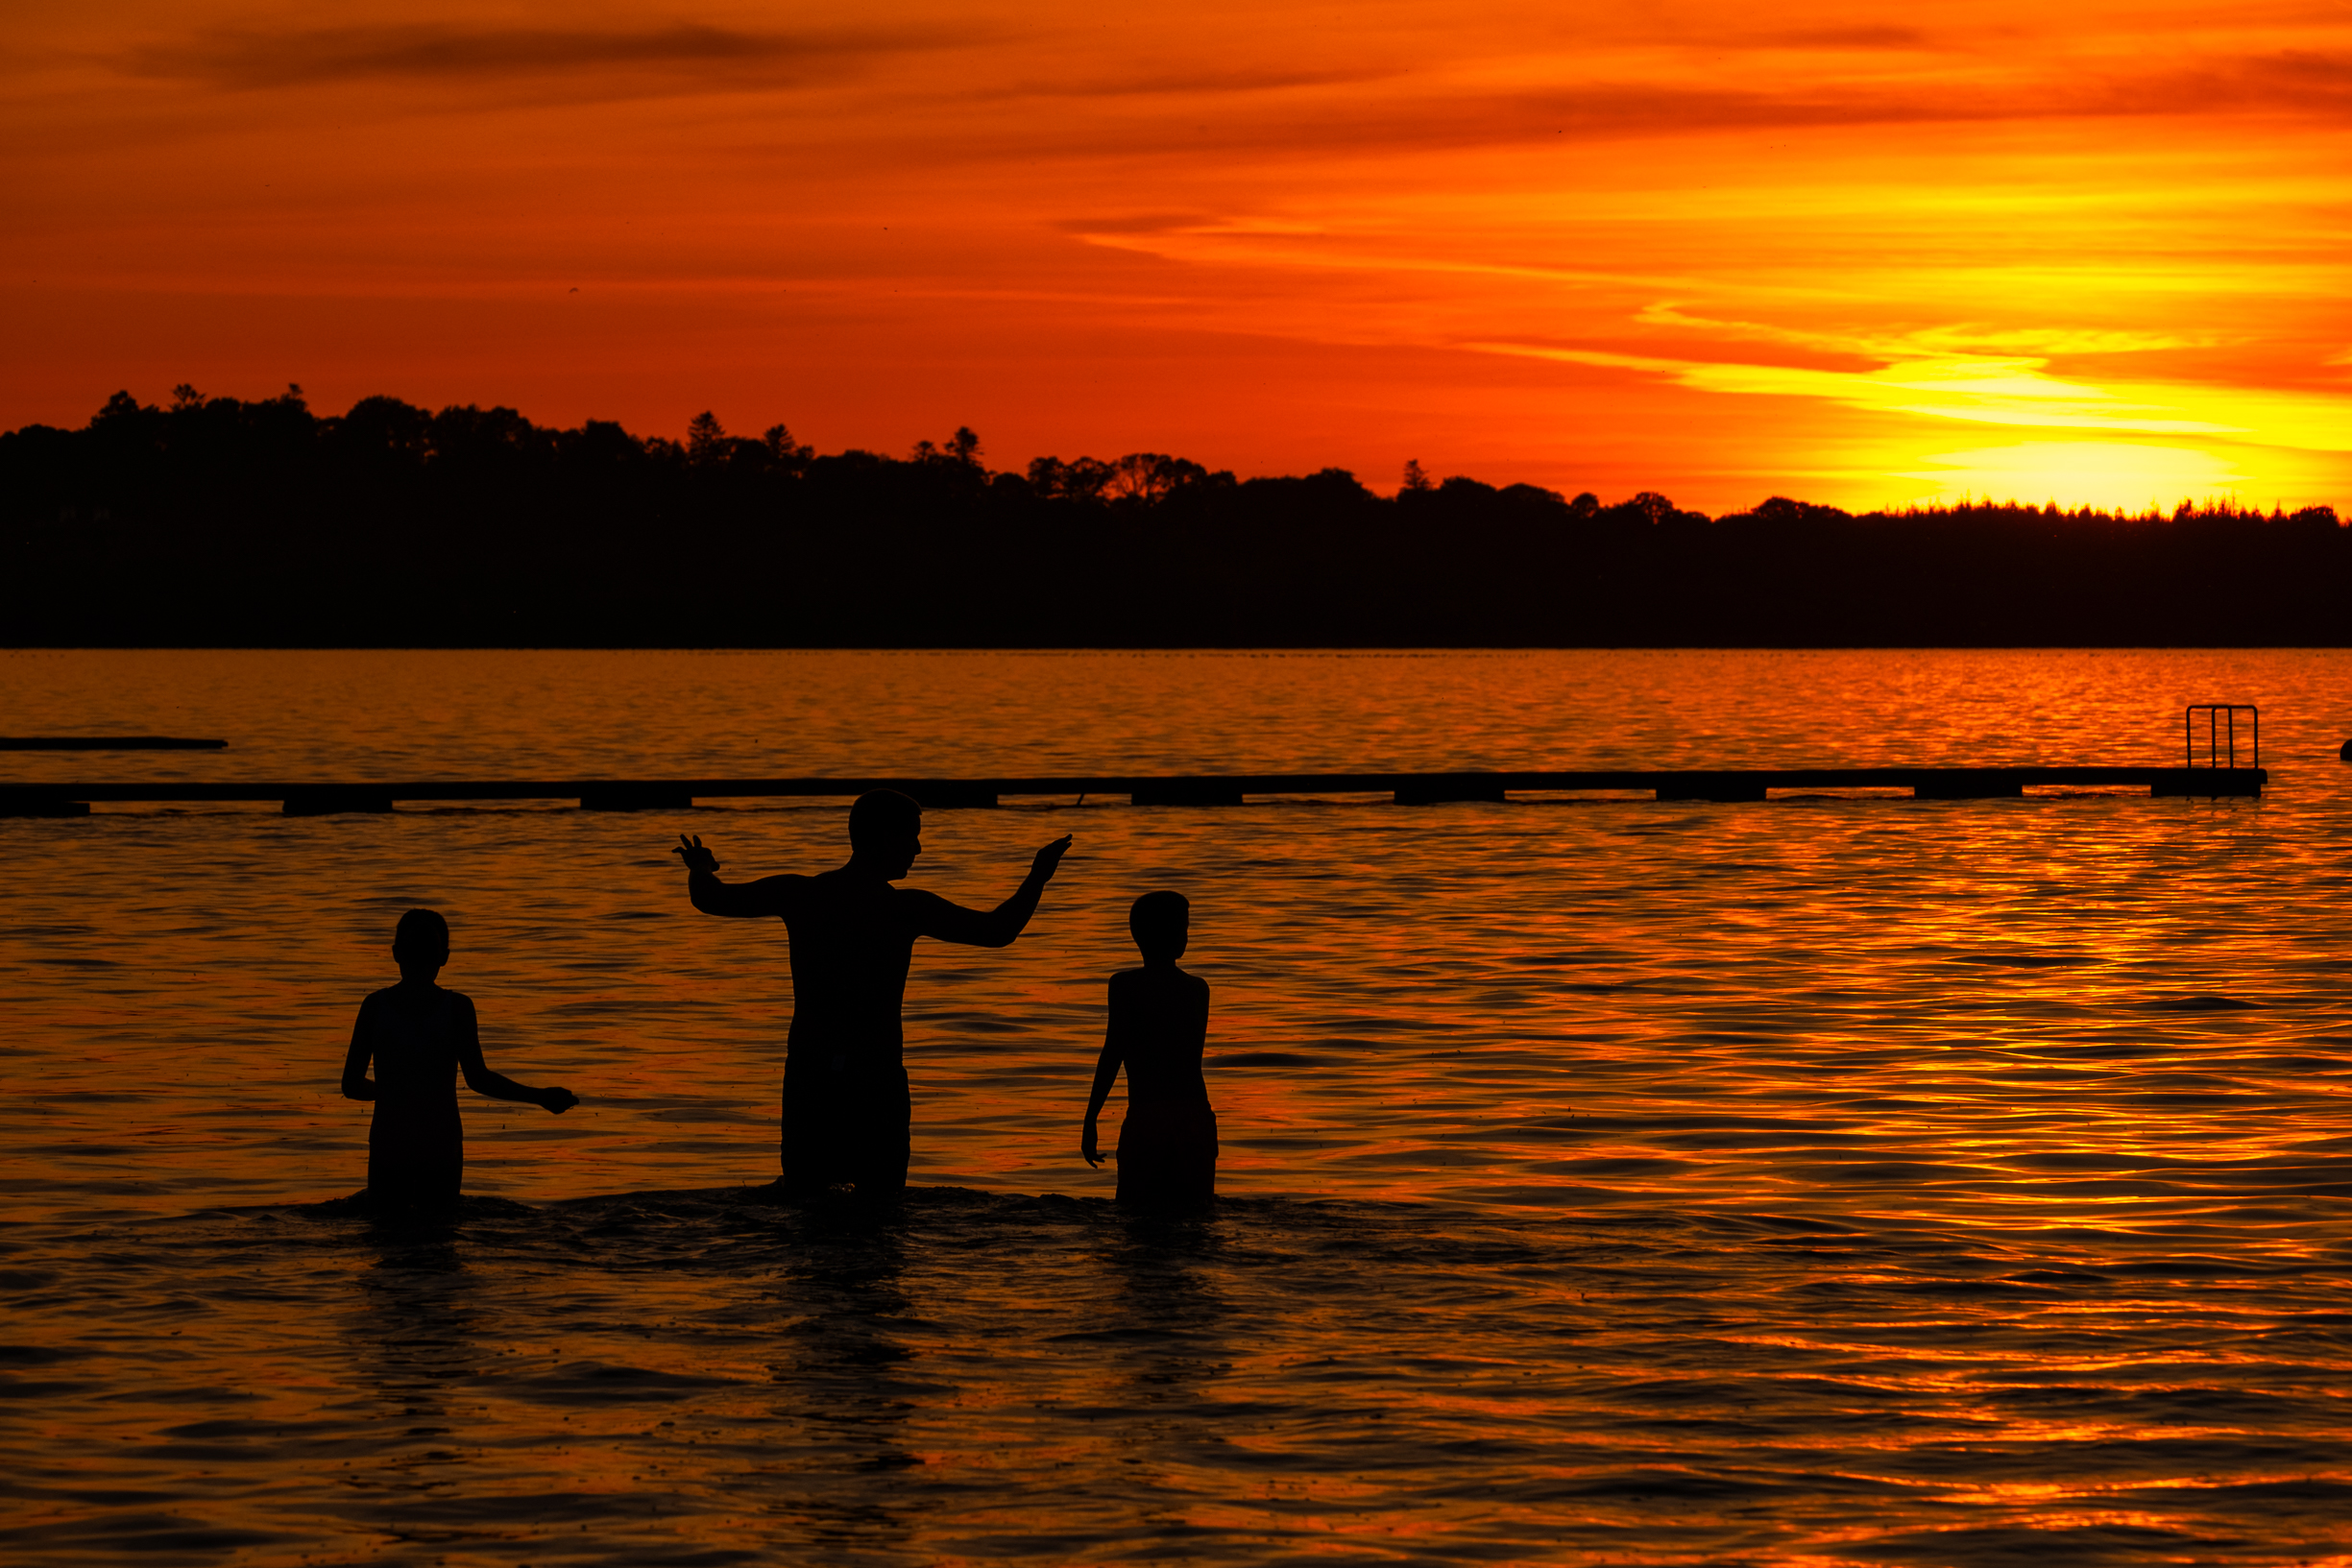 Silhouetted people playing in water at sunset